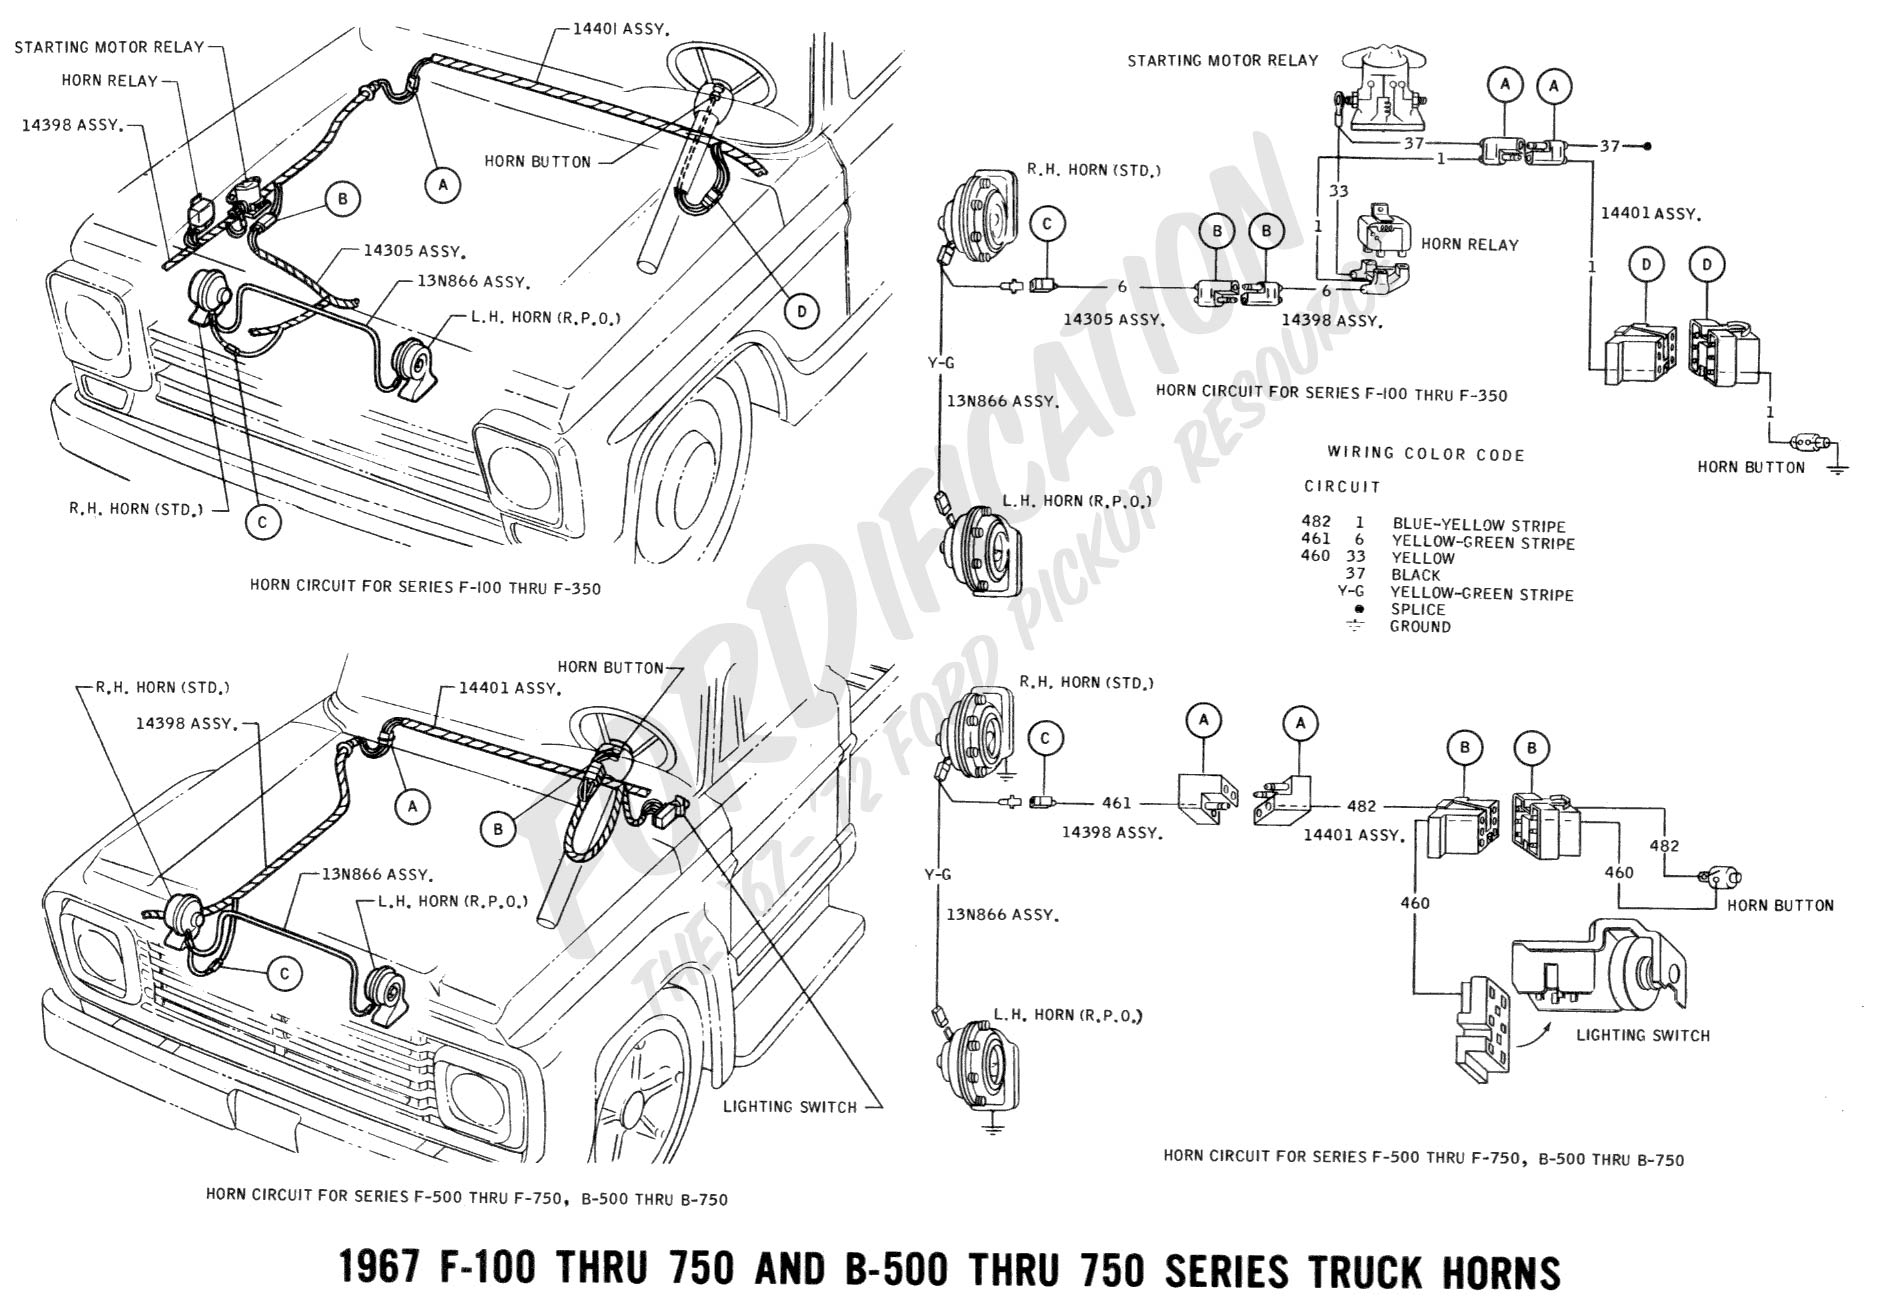 WRG-3124] 72 Ford Truck Ignition Switch Wir on